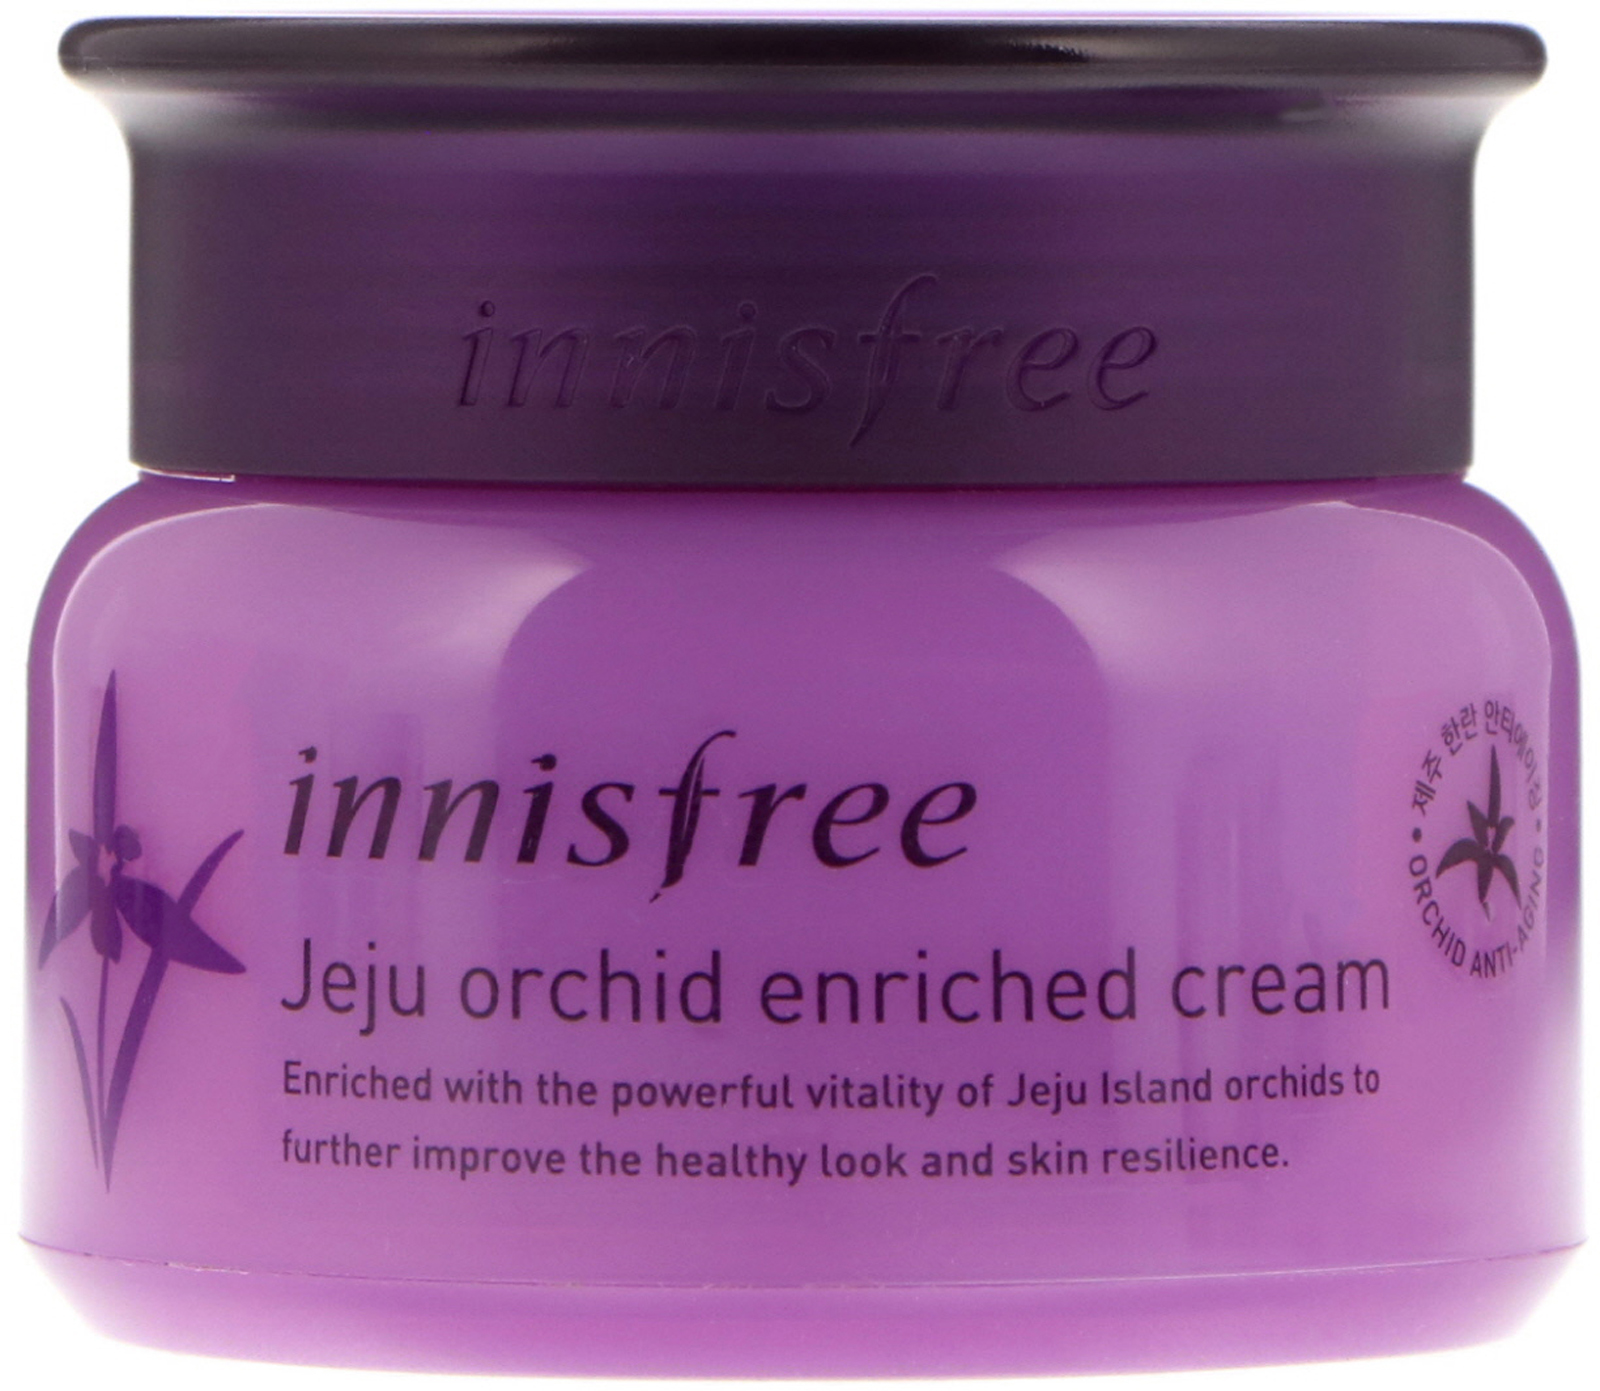 Innisfree Jeju Orchid Enriched Cream 50 Ml Skin Click To Zoom